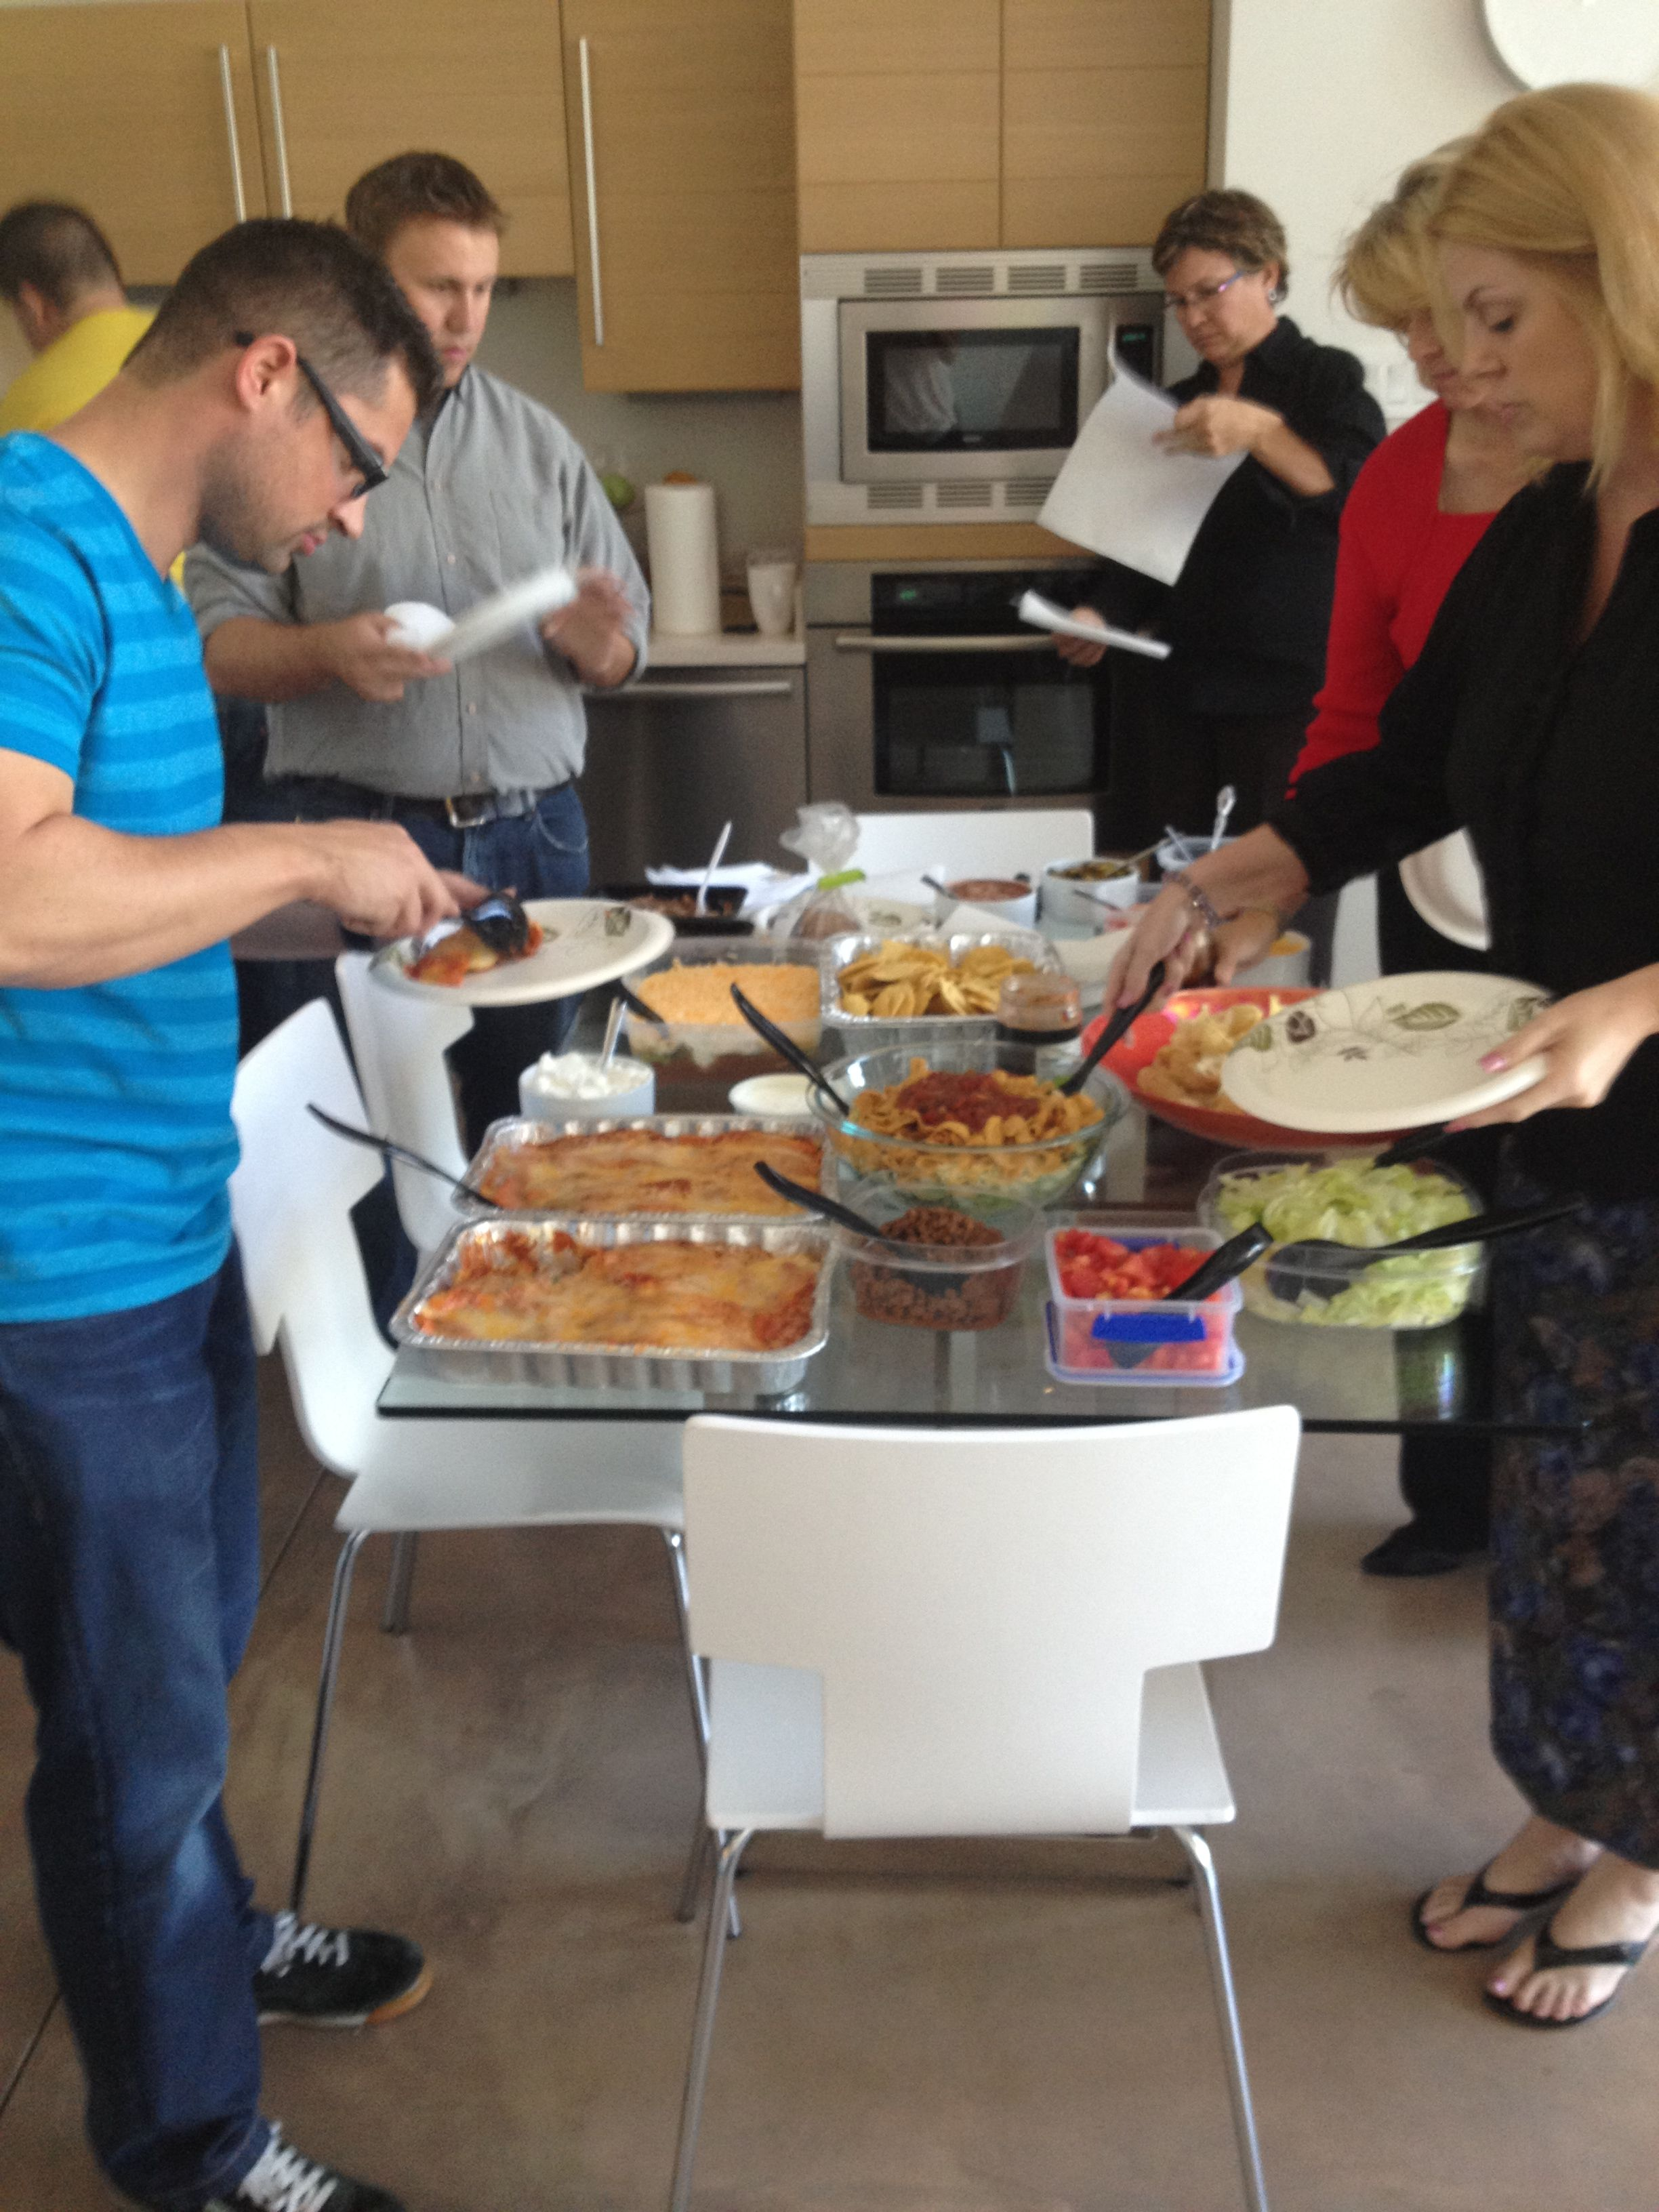 Classroom Potluck Ideas ~ We had a mexican themed potluck lunch here at the office